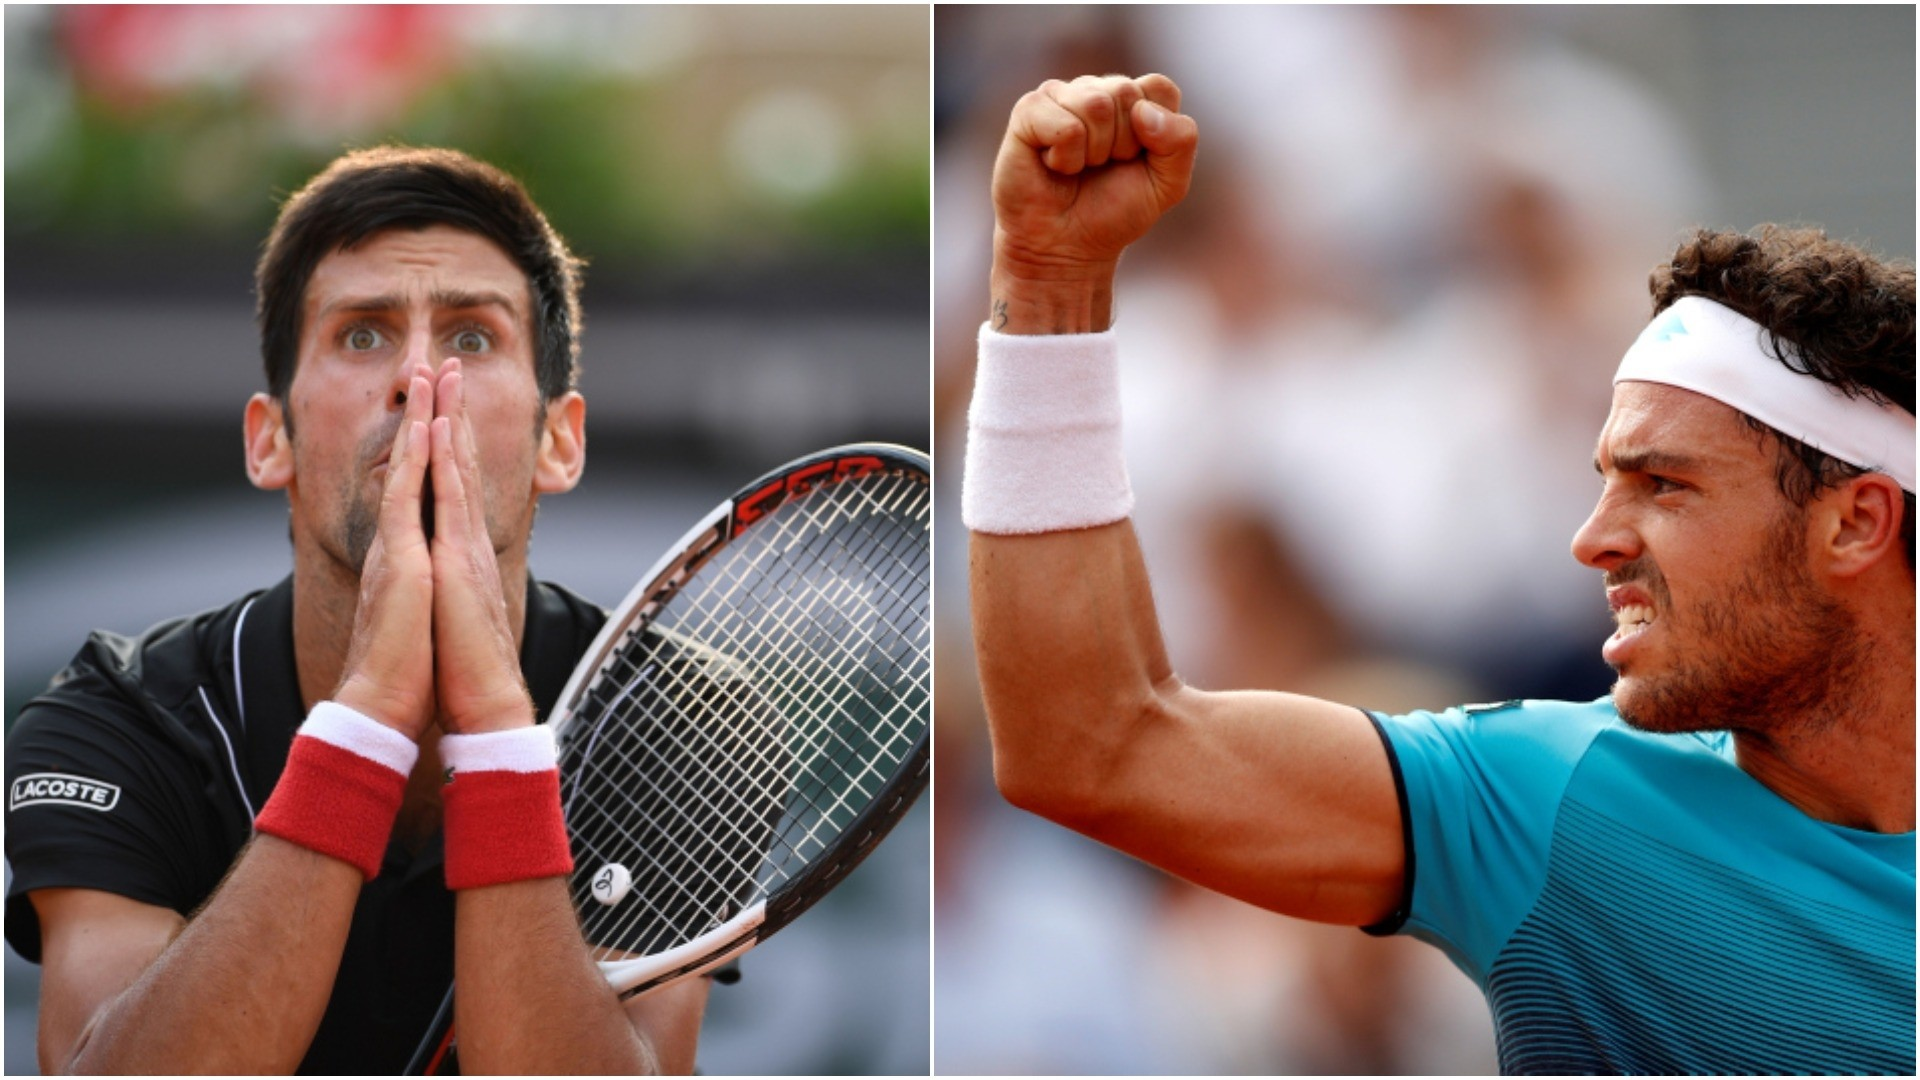 Djokovic reacts after missing a shot against Italy's Marco Cecchinato (R) in the tie break of the fourth set of their quarterfinal match at the French Open tennis tournament at the Roland Garros stadium in Paris, June 5, 2018. (EPA/AP Photos)